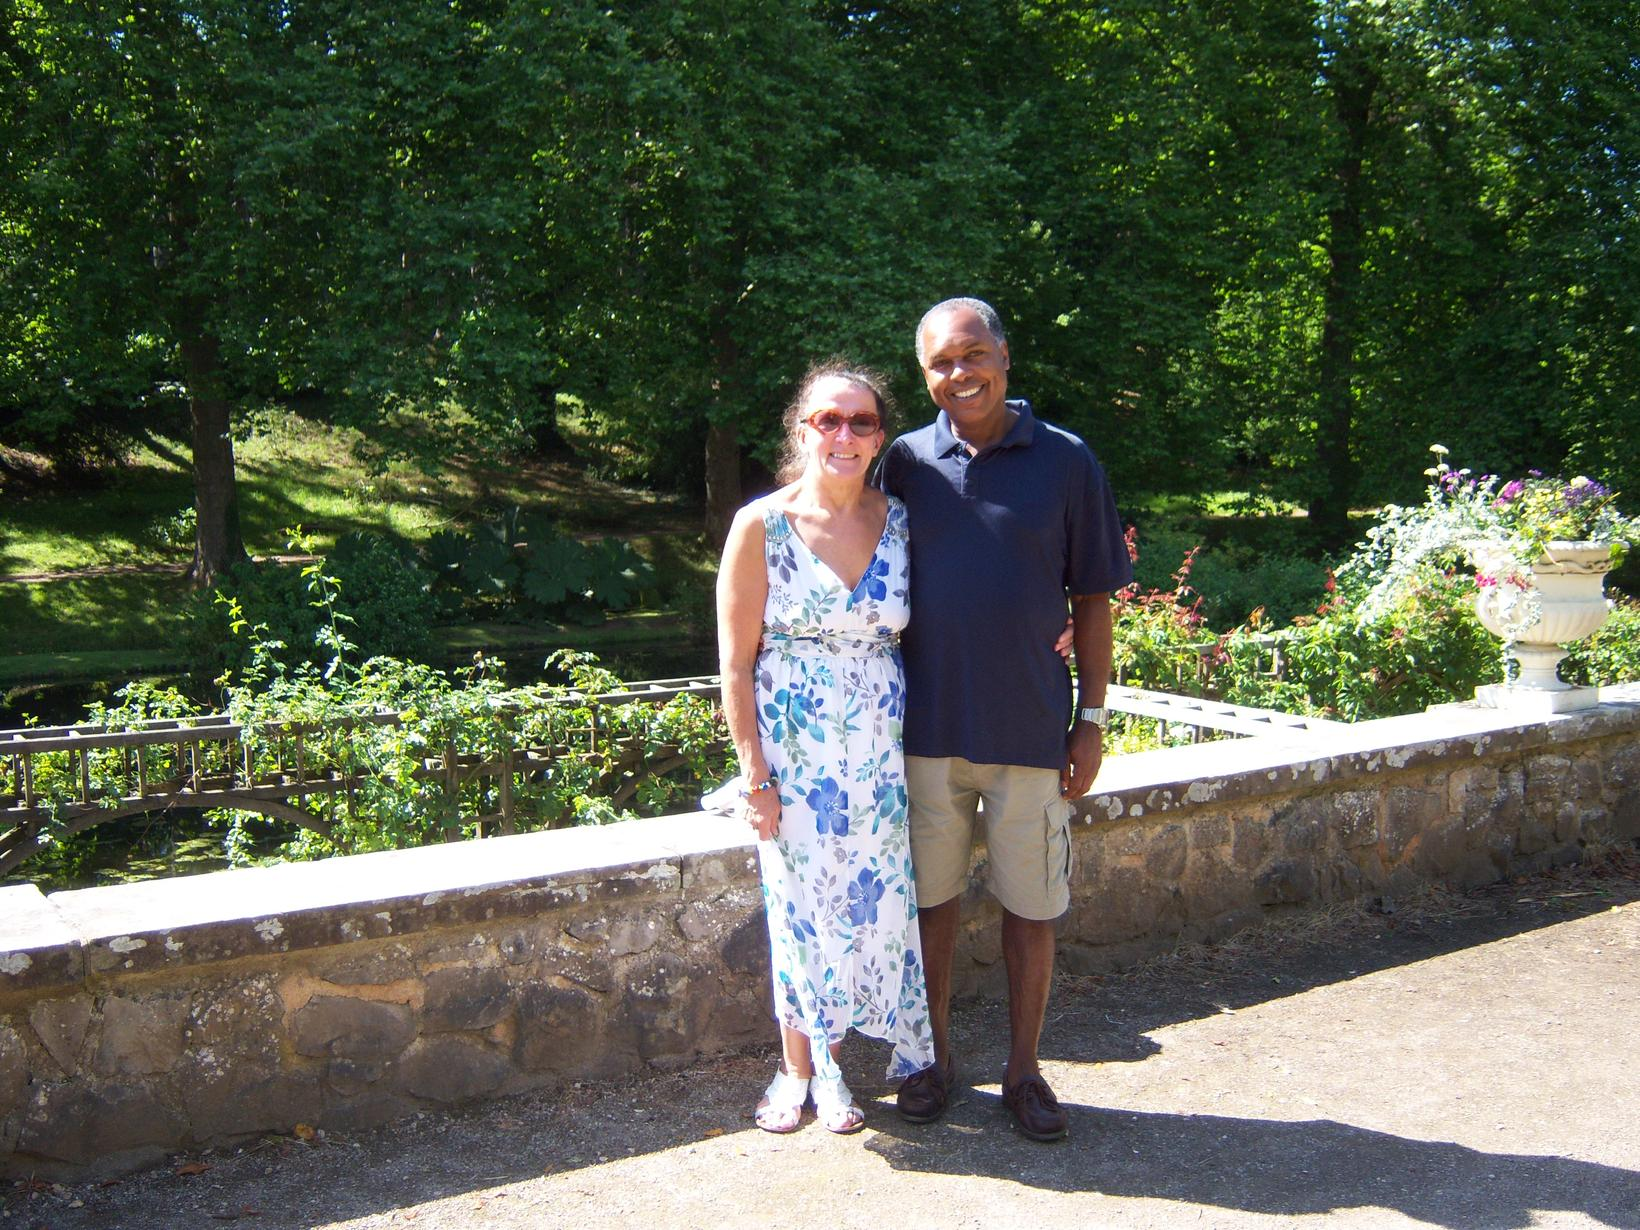 Mary & Barry from Walsall Wood, United Kingdom